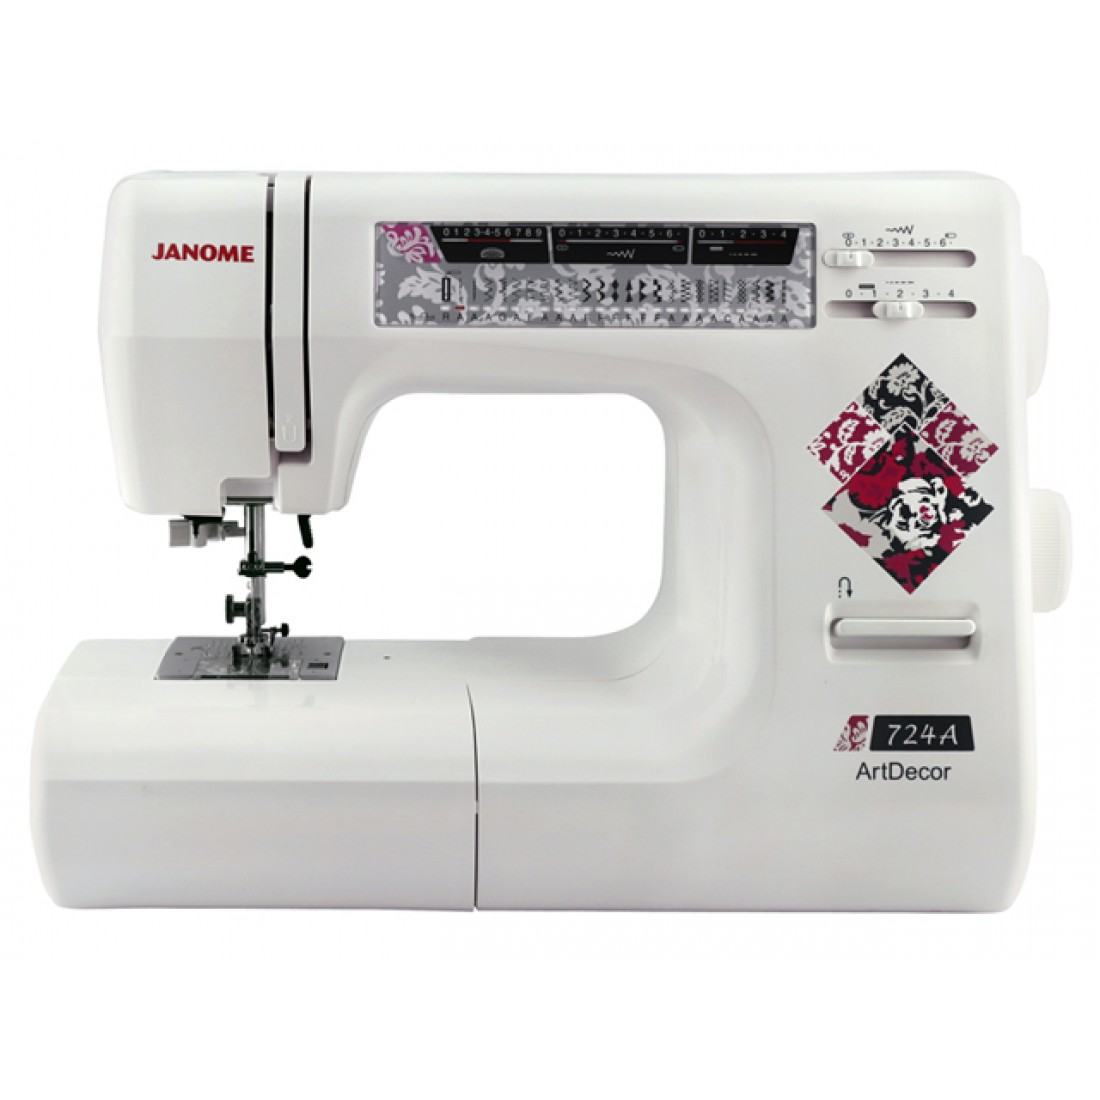 Sewing Machine JANOME ARTDECOR 724A